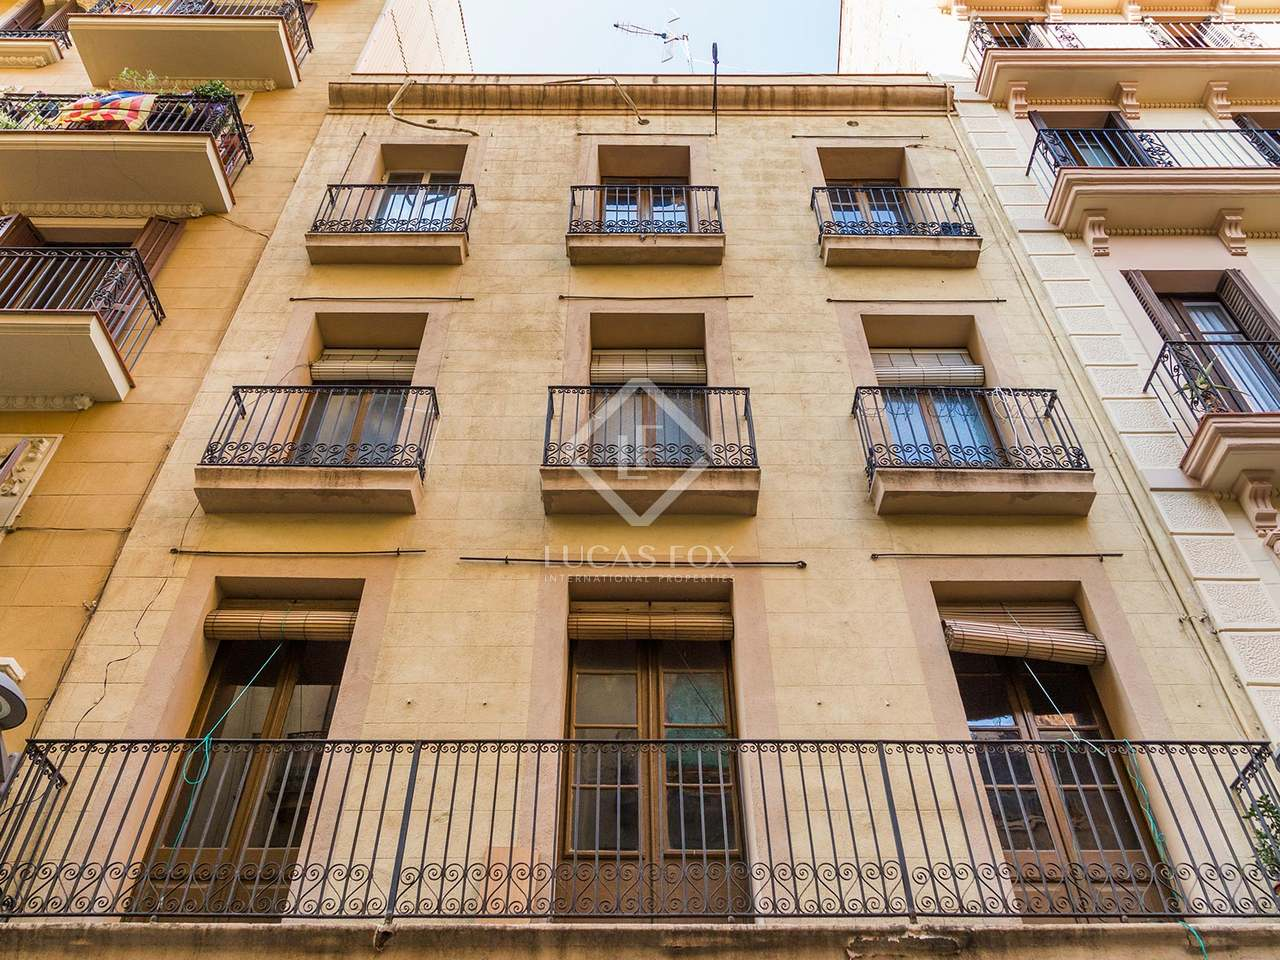 Penthouse apartment for sale in gracia barcelona for Penthouse apartment for sale